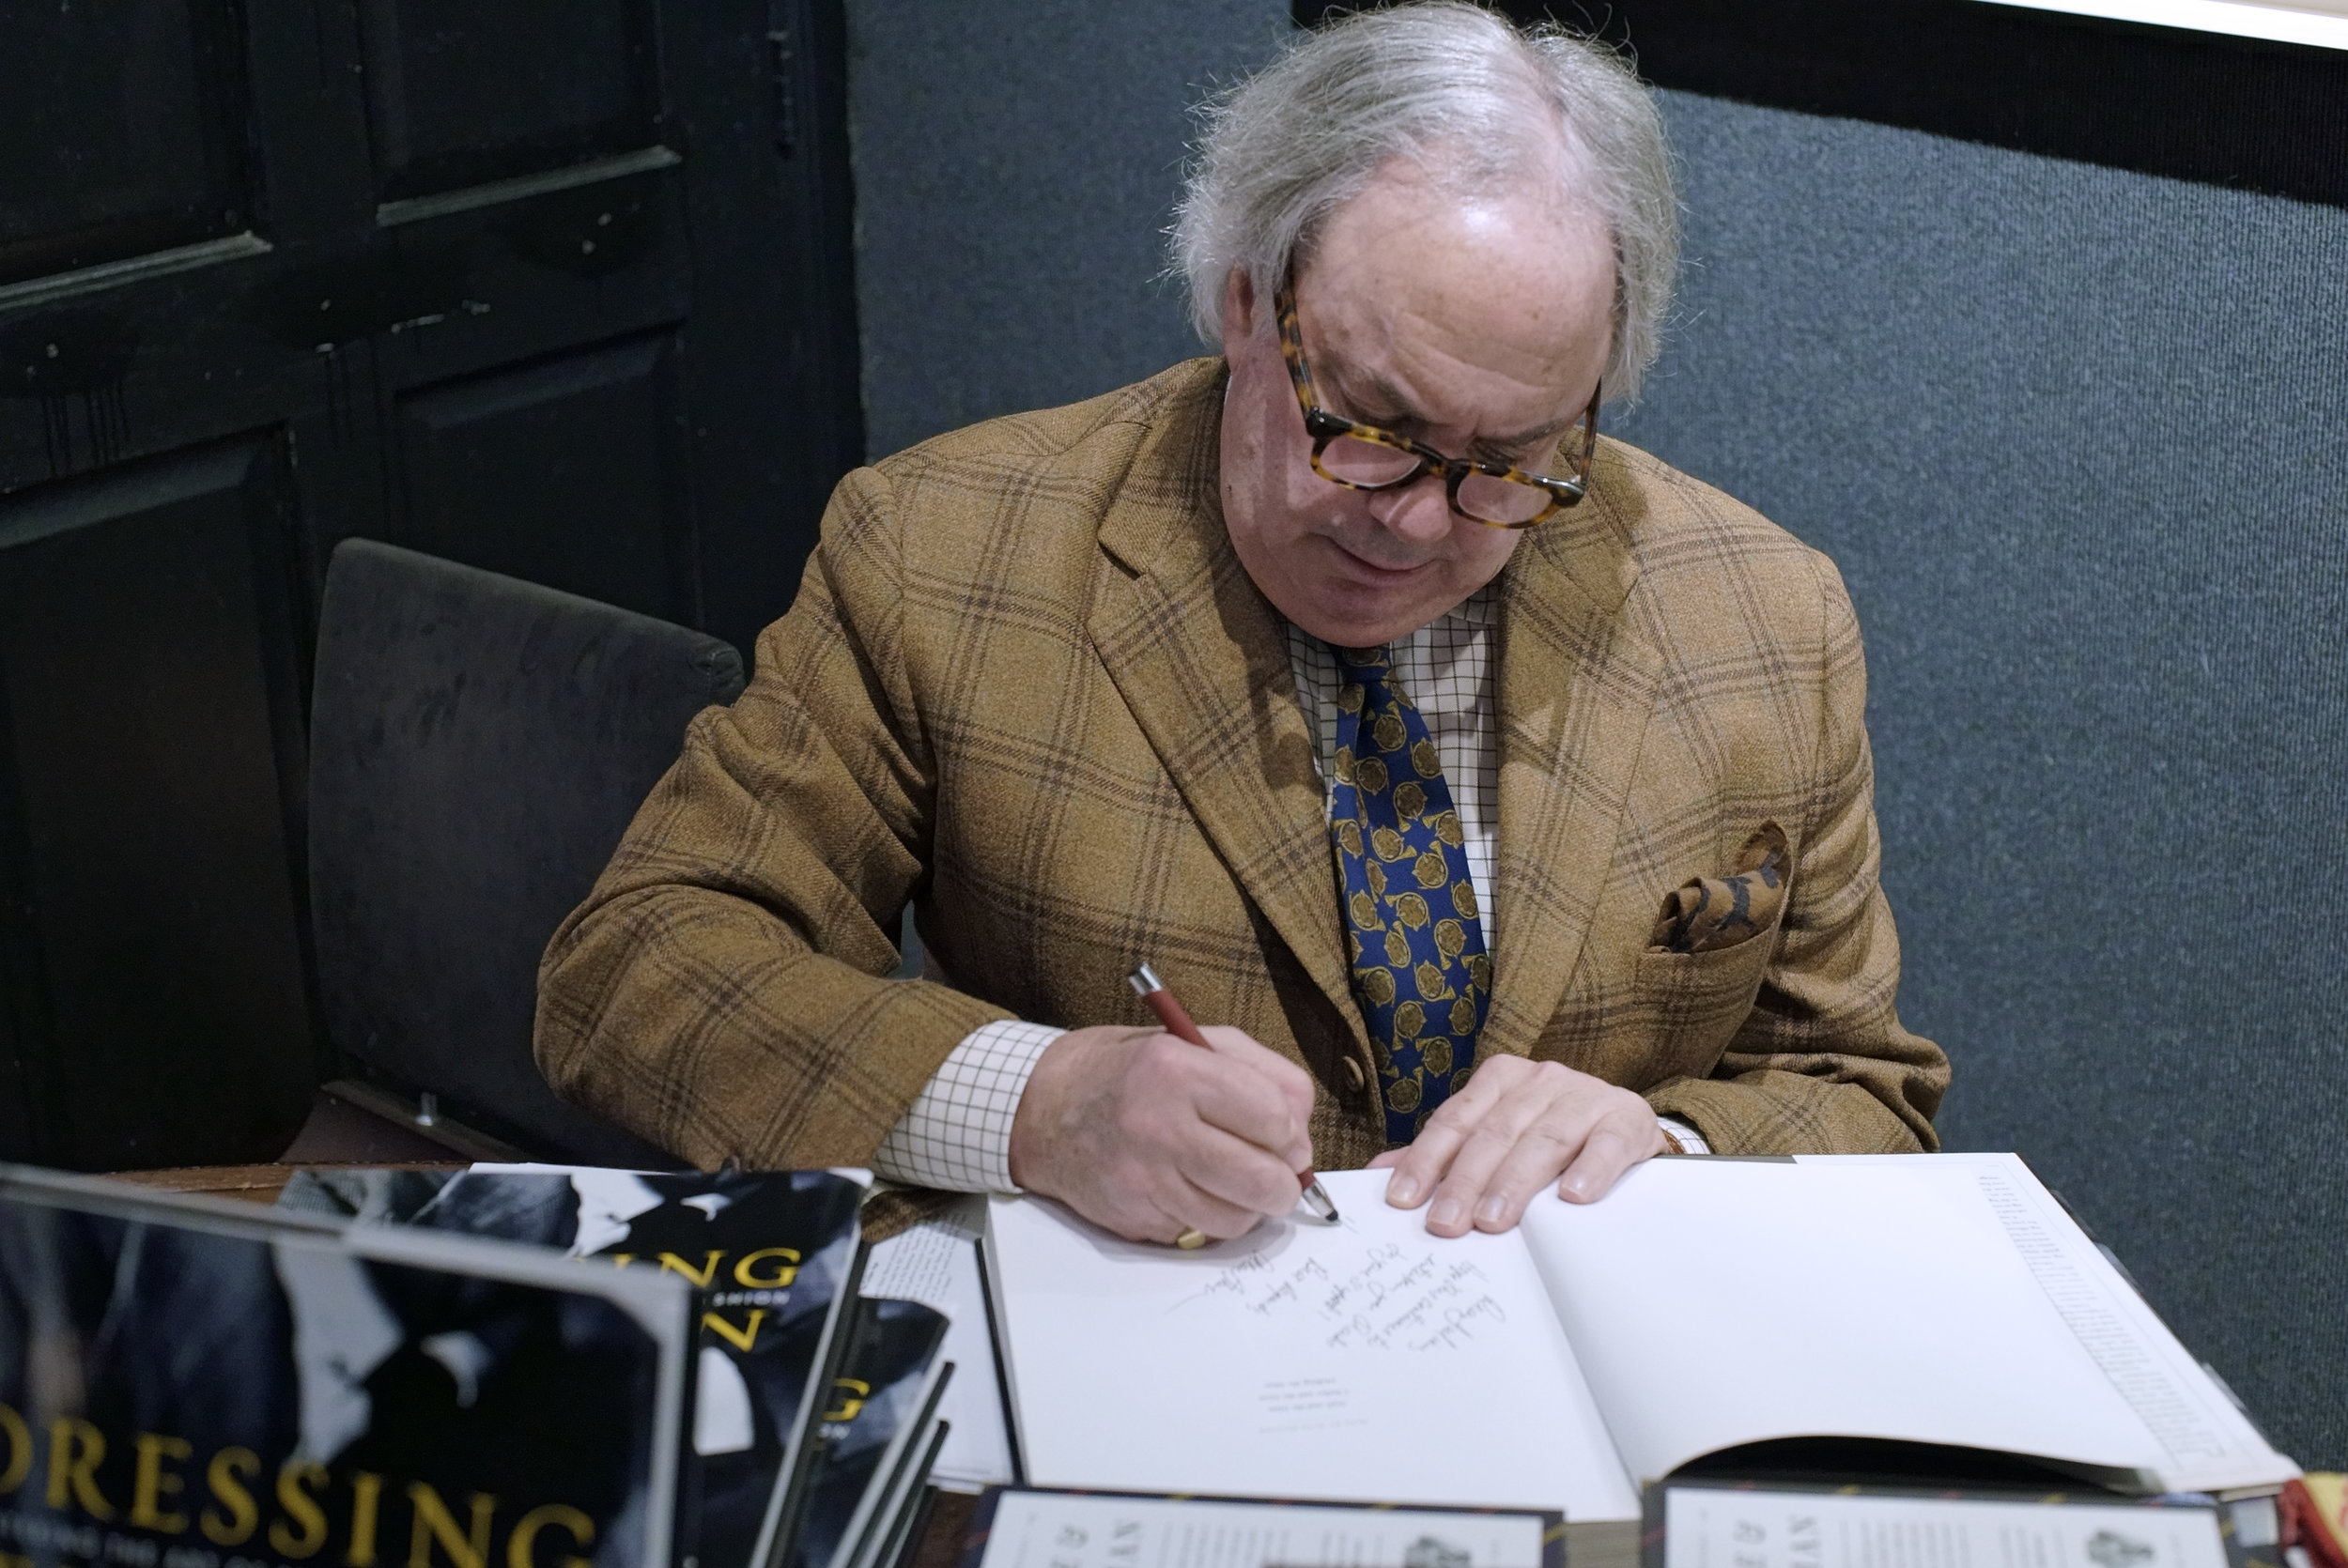 Alan signs copies of  Dressing the Man . Our next appearance at the National Arts Club will be on November 8th, to celebrate the publication of Alan's authorized biography of Ralph Lauren. (Photo by Michael Pushkarskiy)